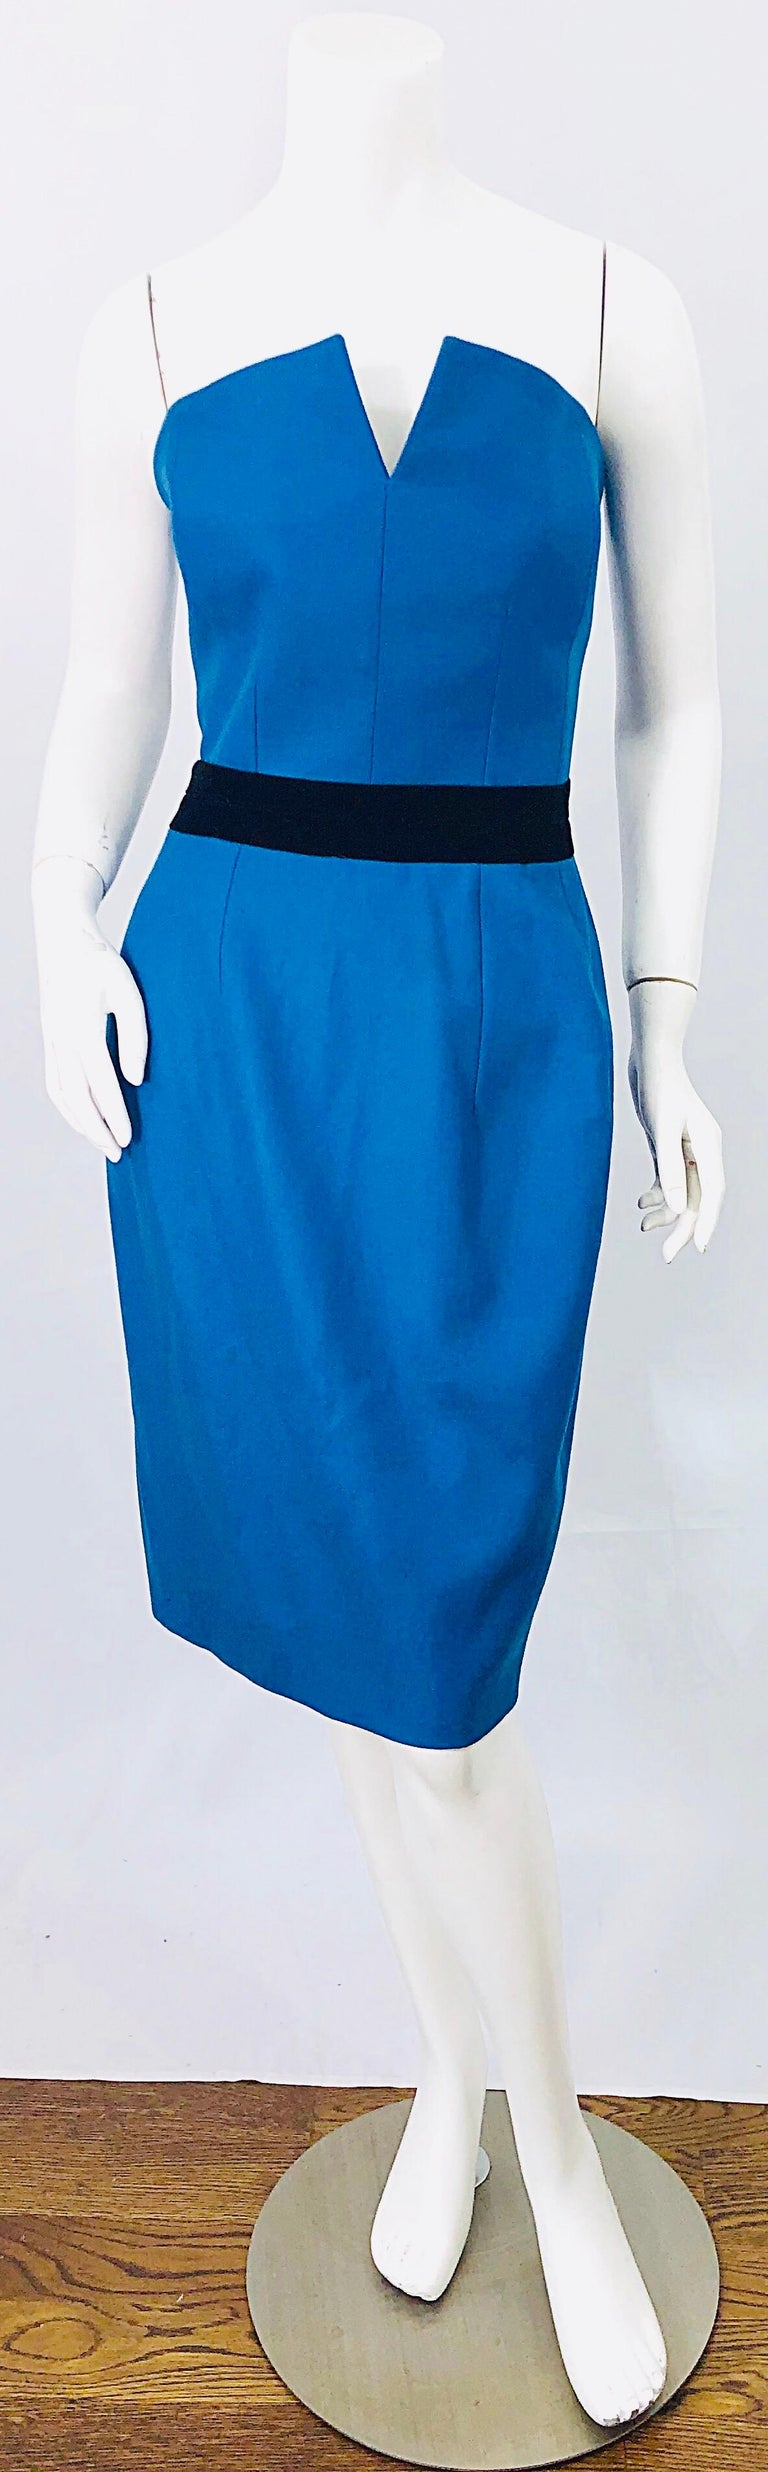 Ad Campaign Yves Saint Laurent YSL Fall / Winter 2008 Turquoise Blue Dress For Sale 7